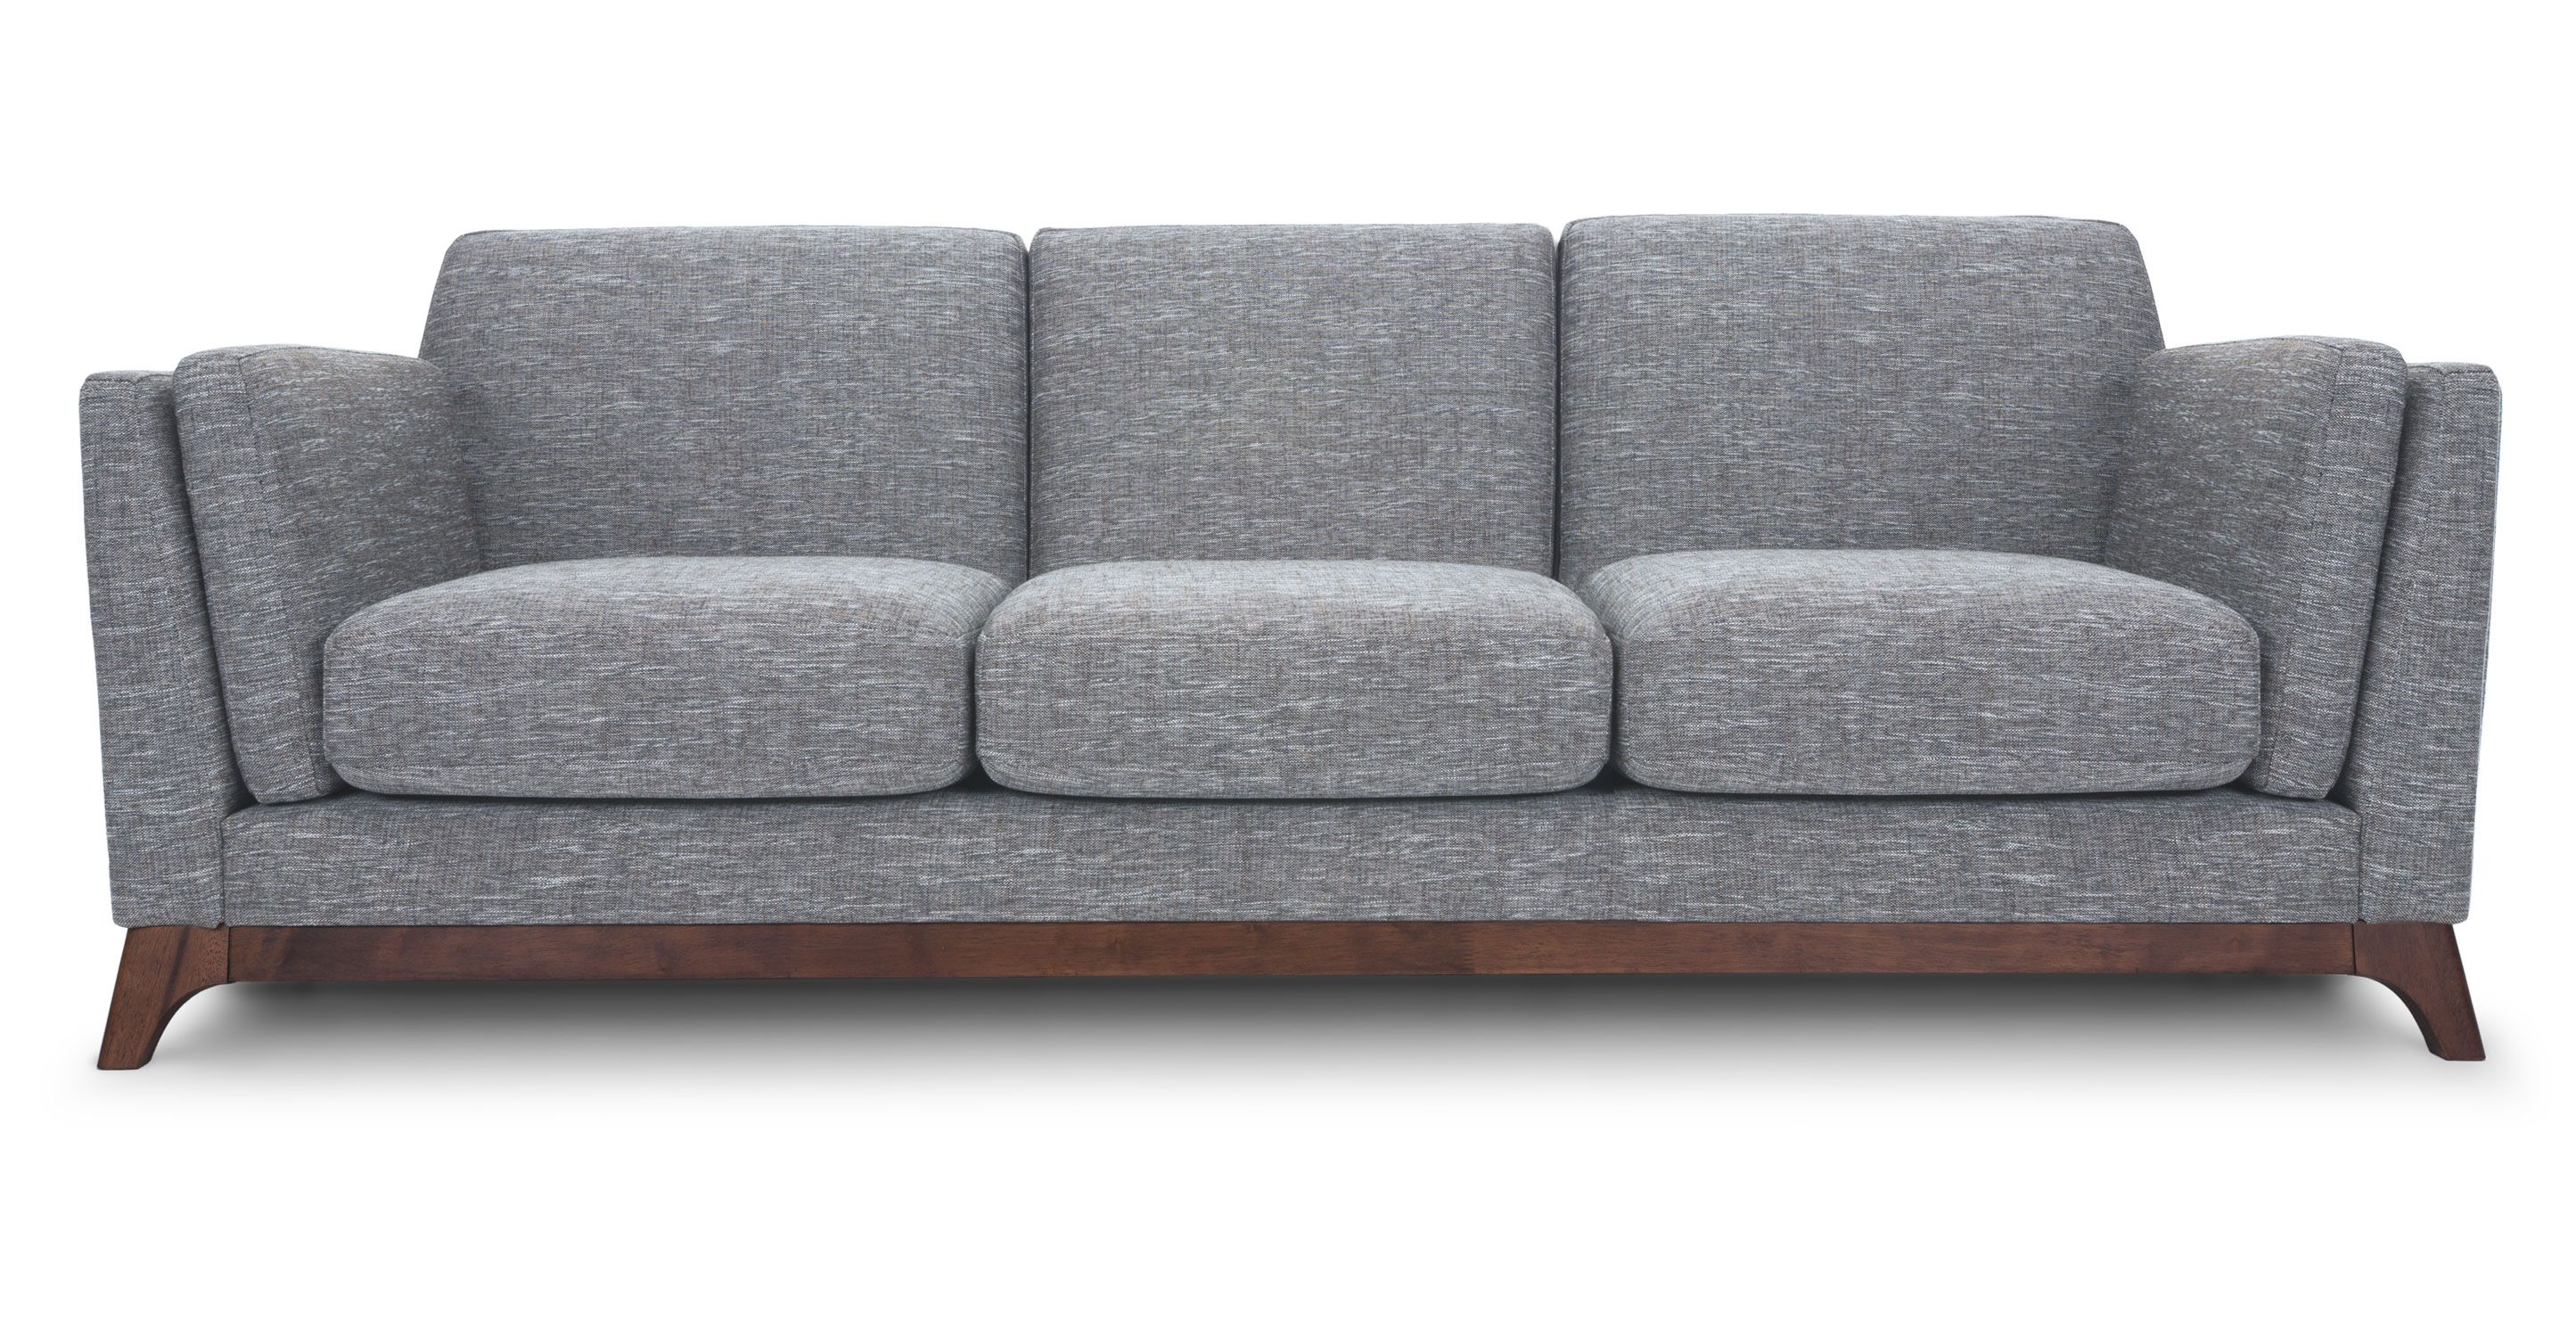 Ceni Volcanic Gray Sofa Scandinavian Furniture Gray Sofa